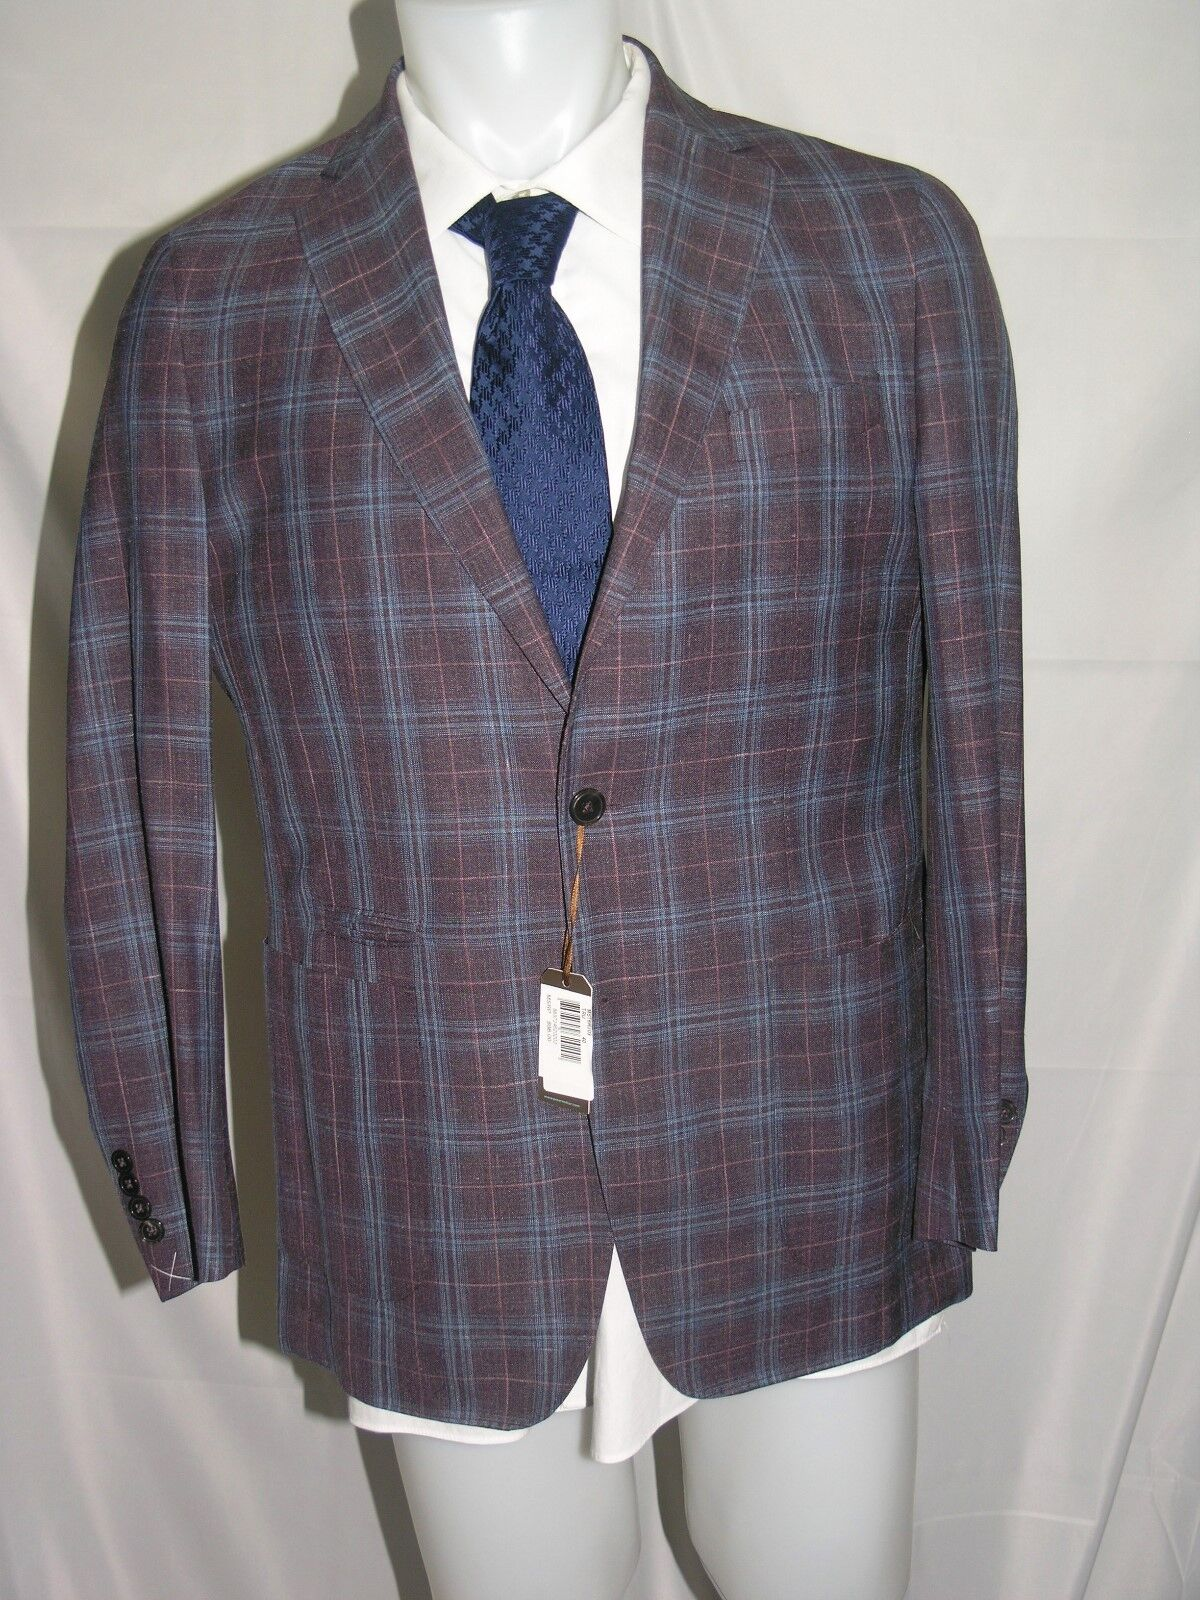 Peter Millar Collection Newport Soft Coat Lgold Piana Summer Time 40 S NWT